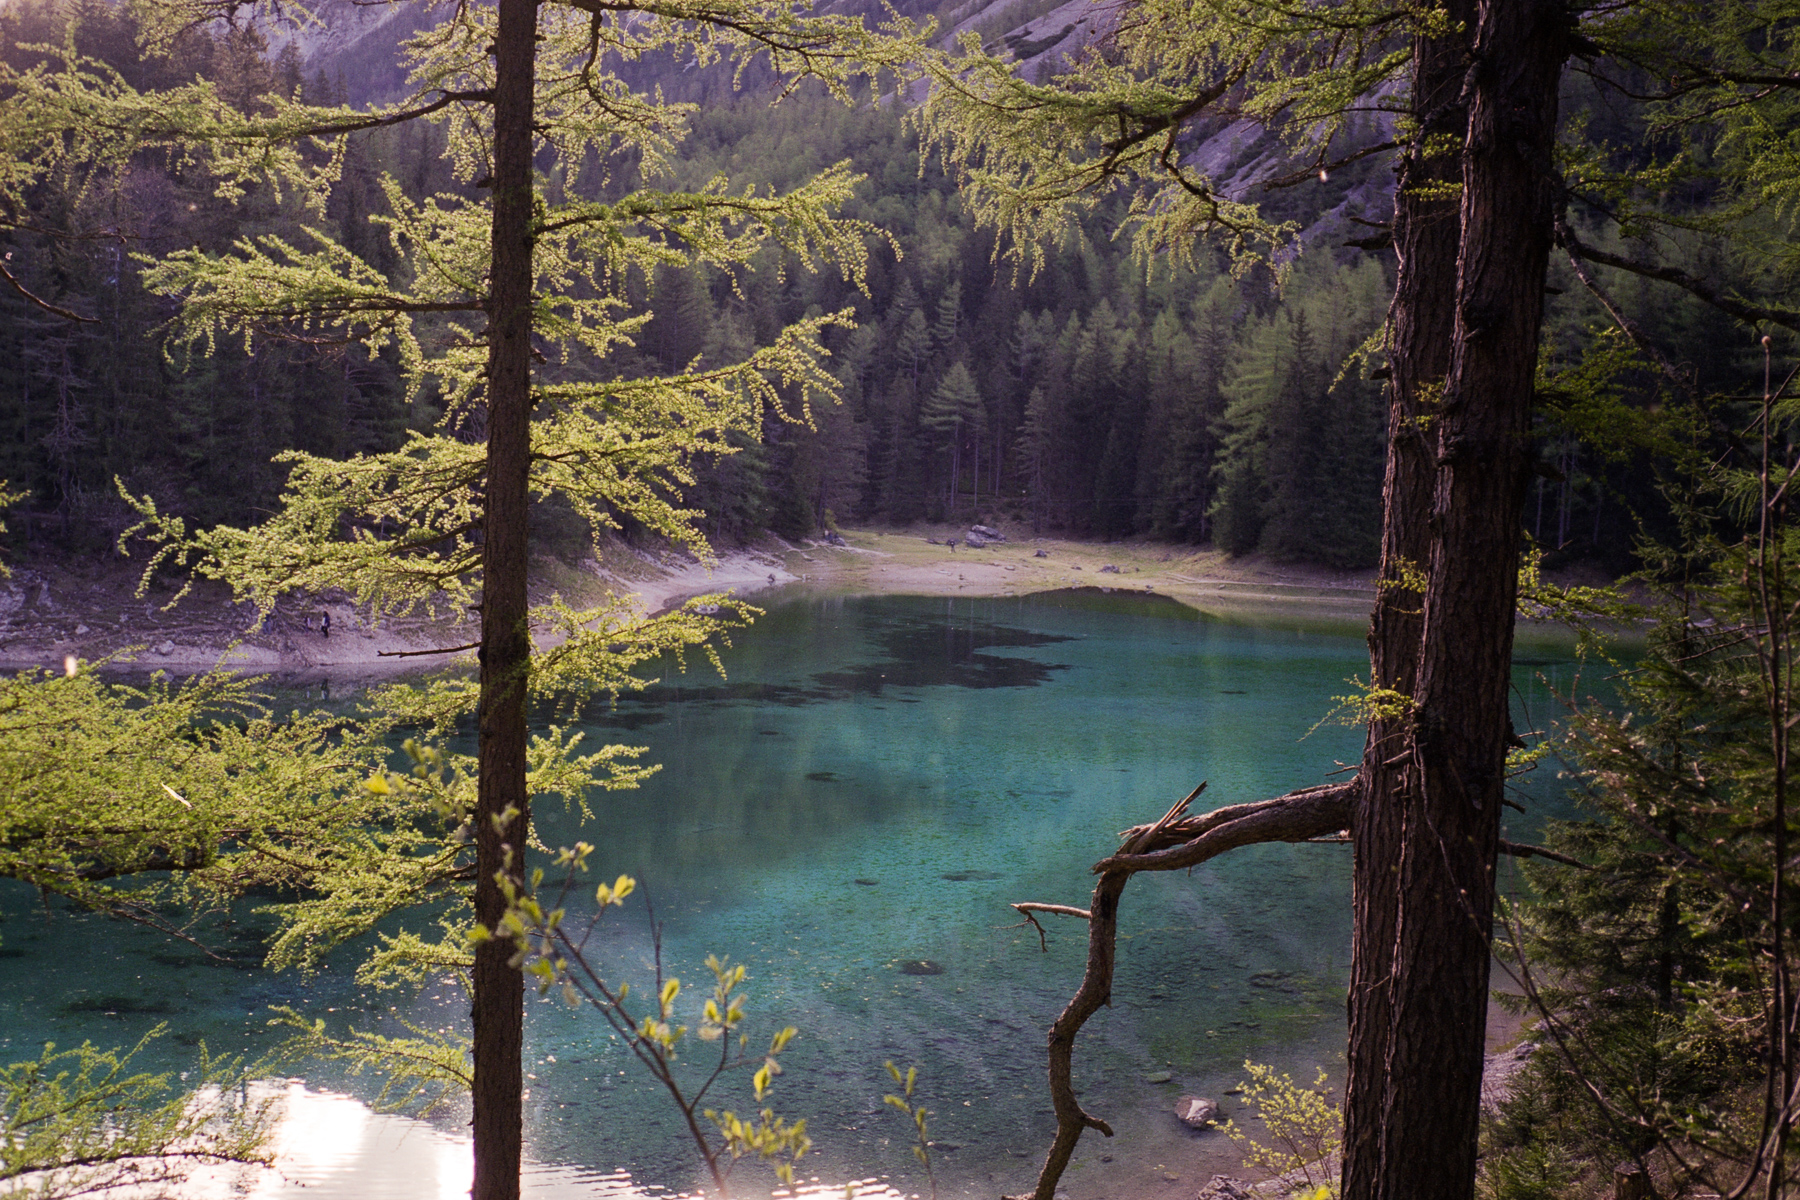 Grüner See, Leica M2, Voigtlander Color-Skopar 35mm f/2.5, Fujicolor Pro 160NS, Epson Perfection V700